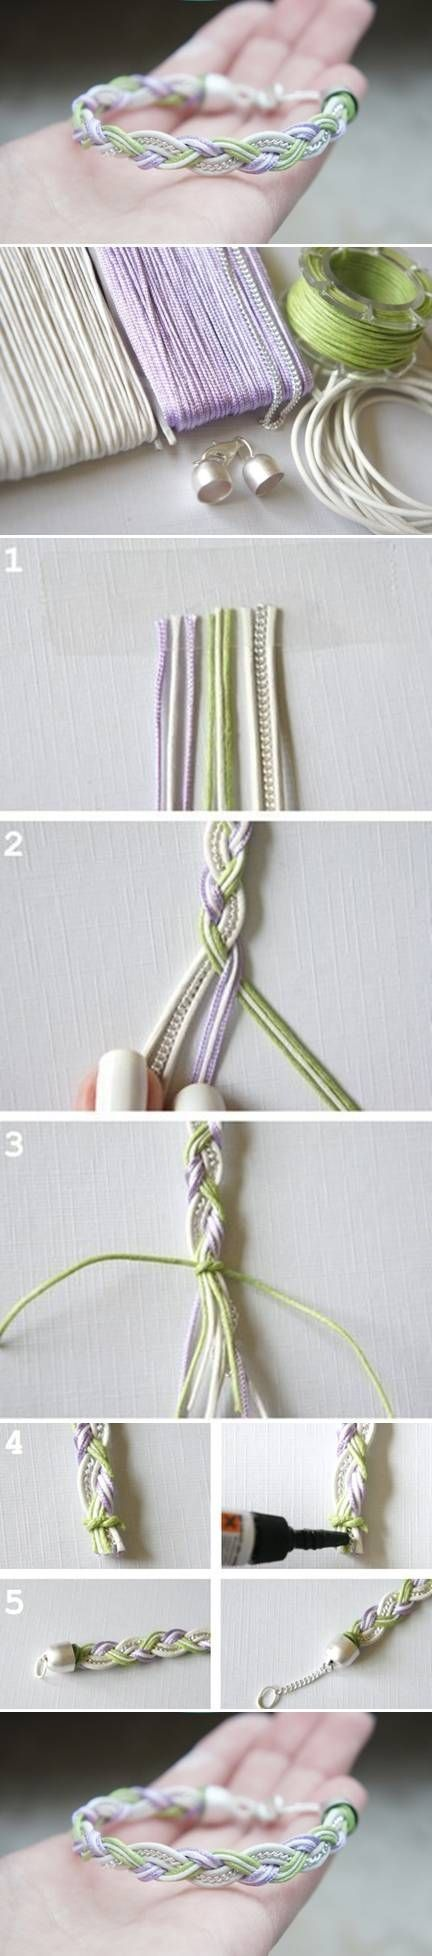 DIY Simple Beautiful Bracelet Pictures, Photos, and Images for Facebook, Tumblr, Pinterest, and Twitter!